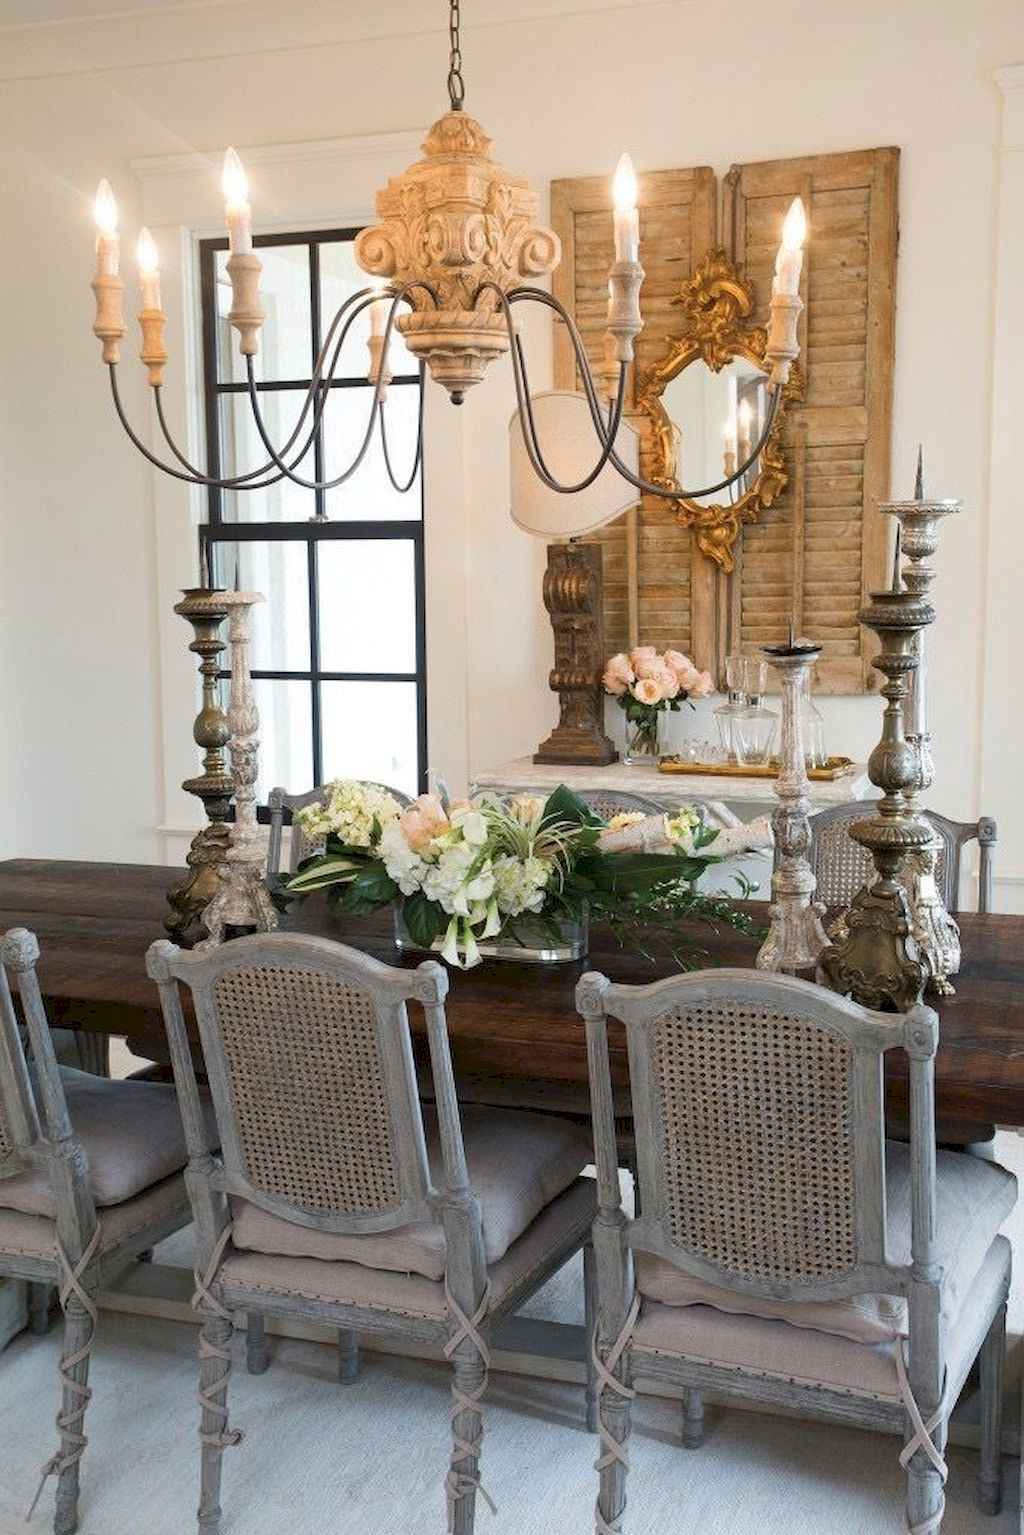 Beautiful French Country Dining Room Ideas 37 Homespecially